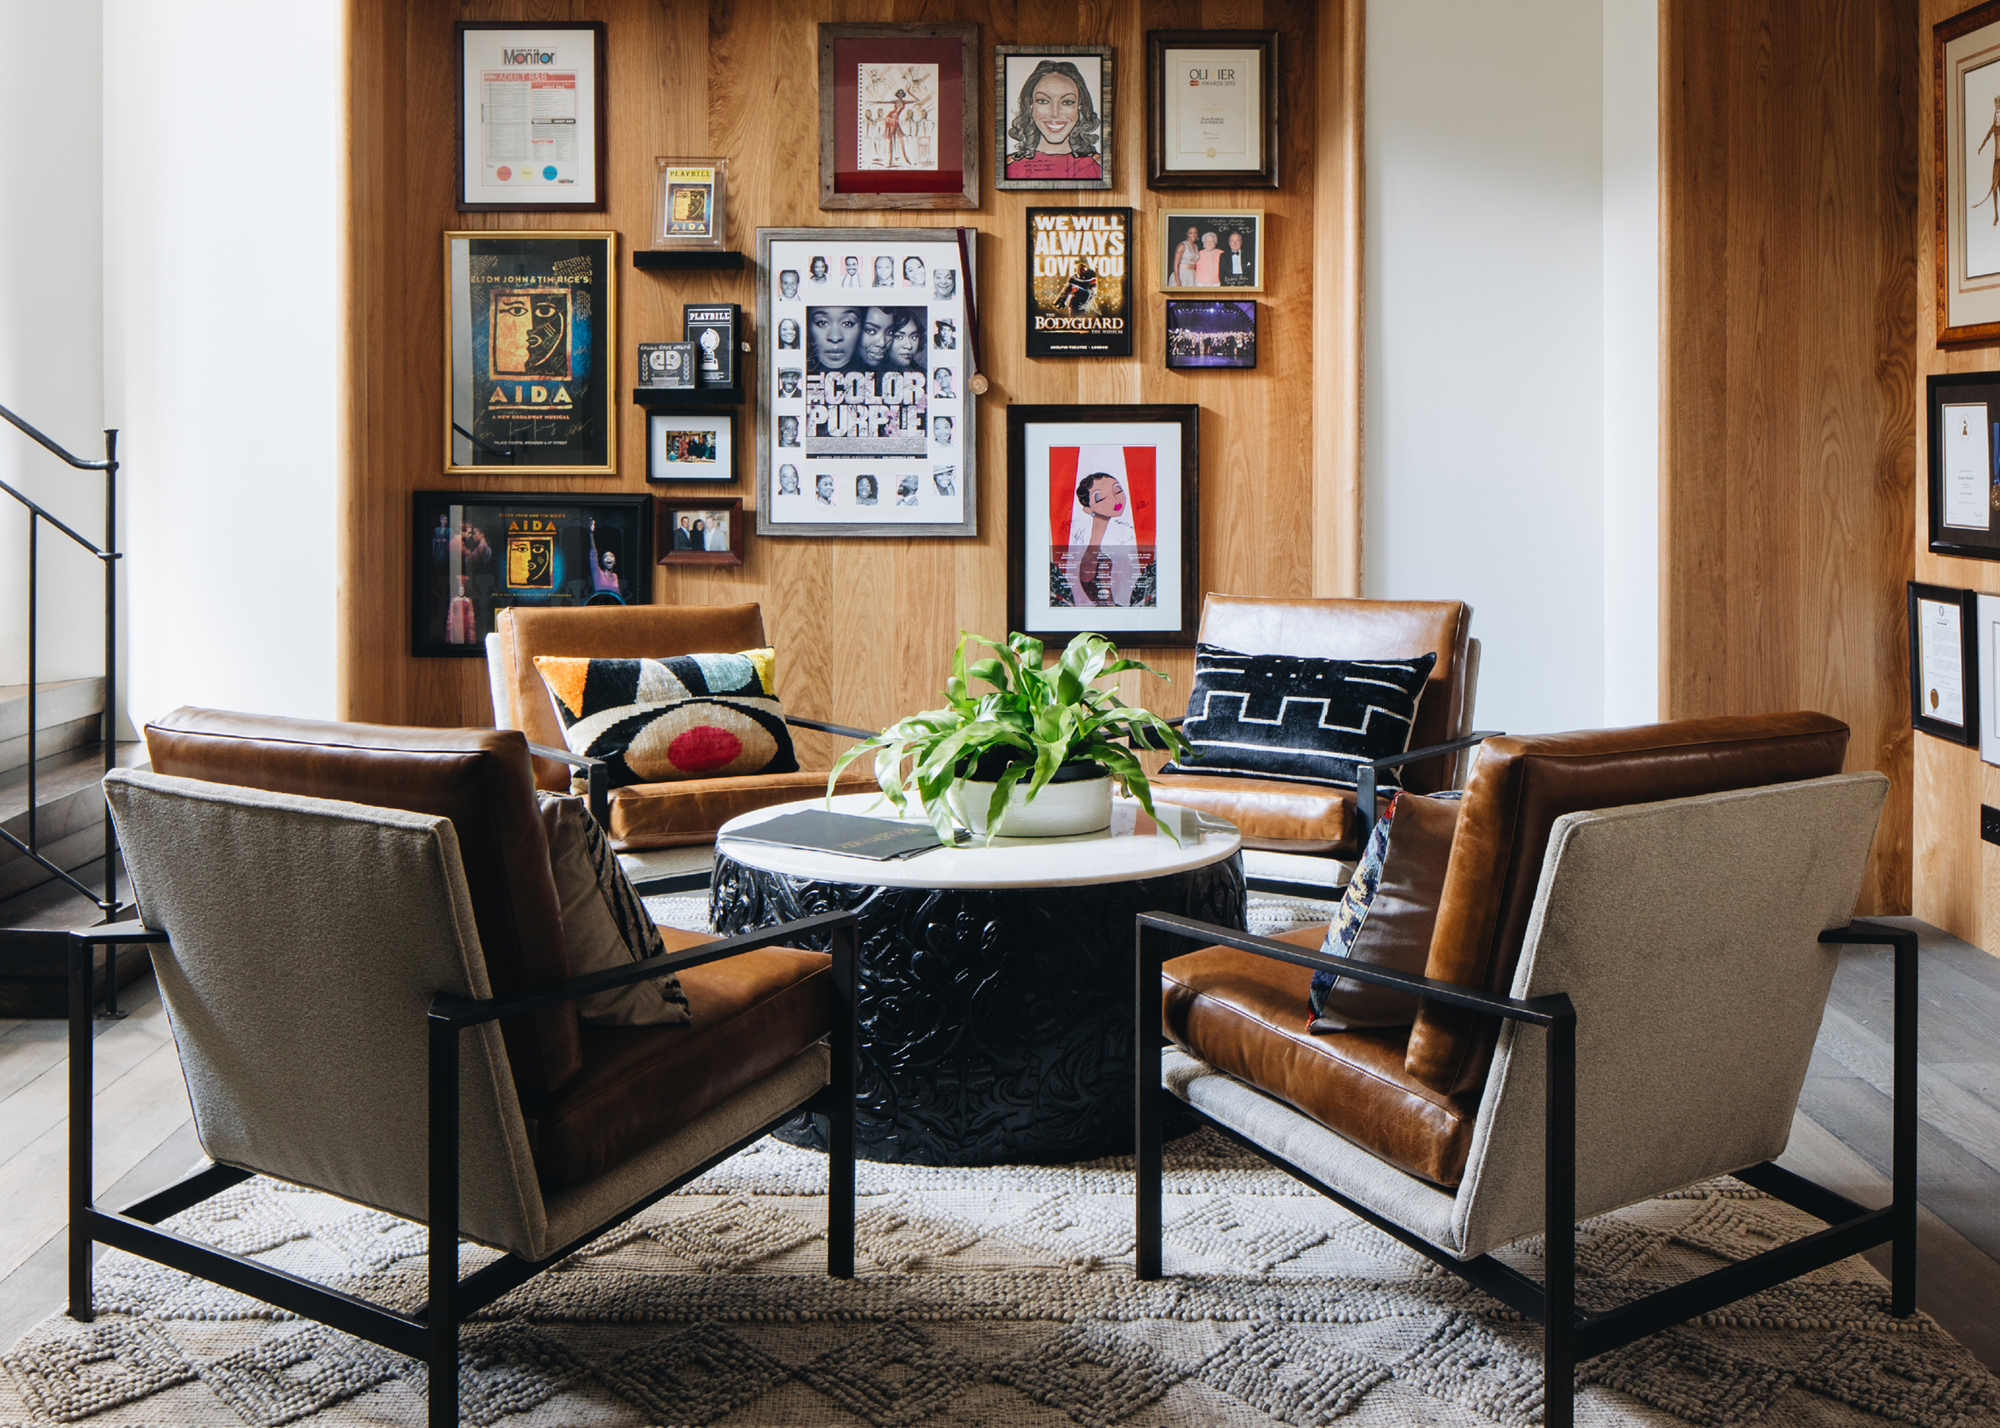 Shop The Look: Group Effort/The Lounge